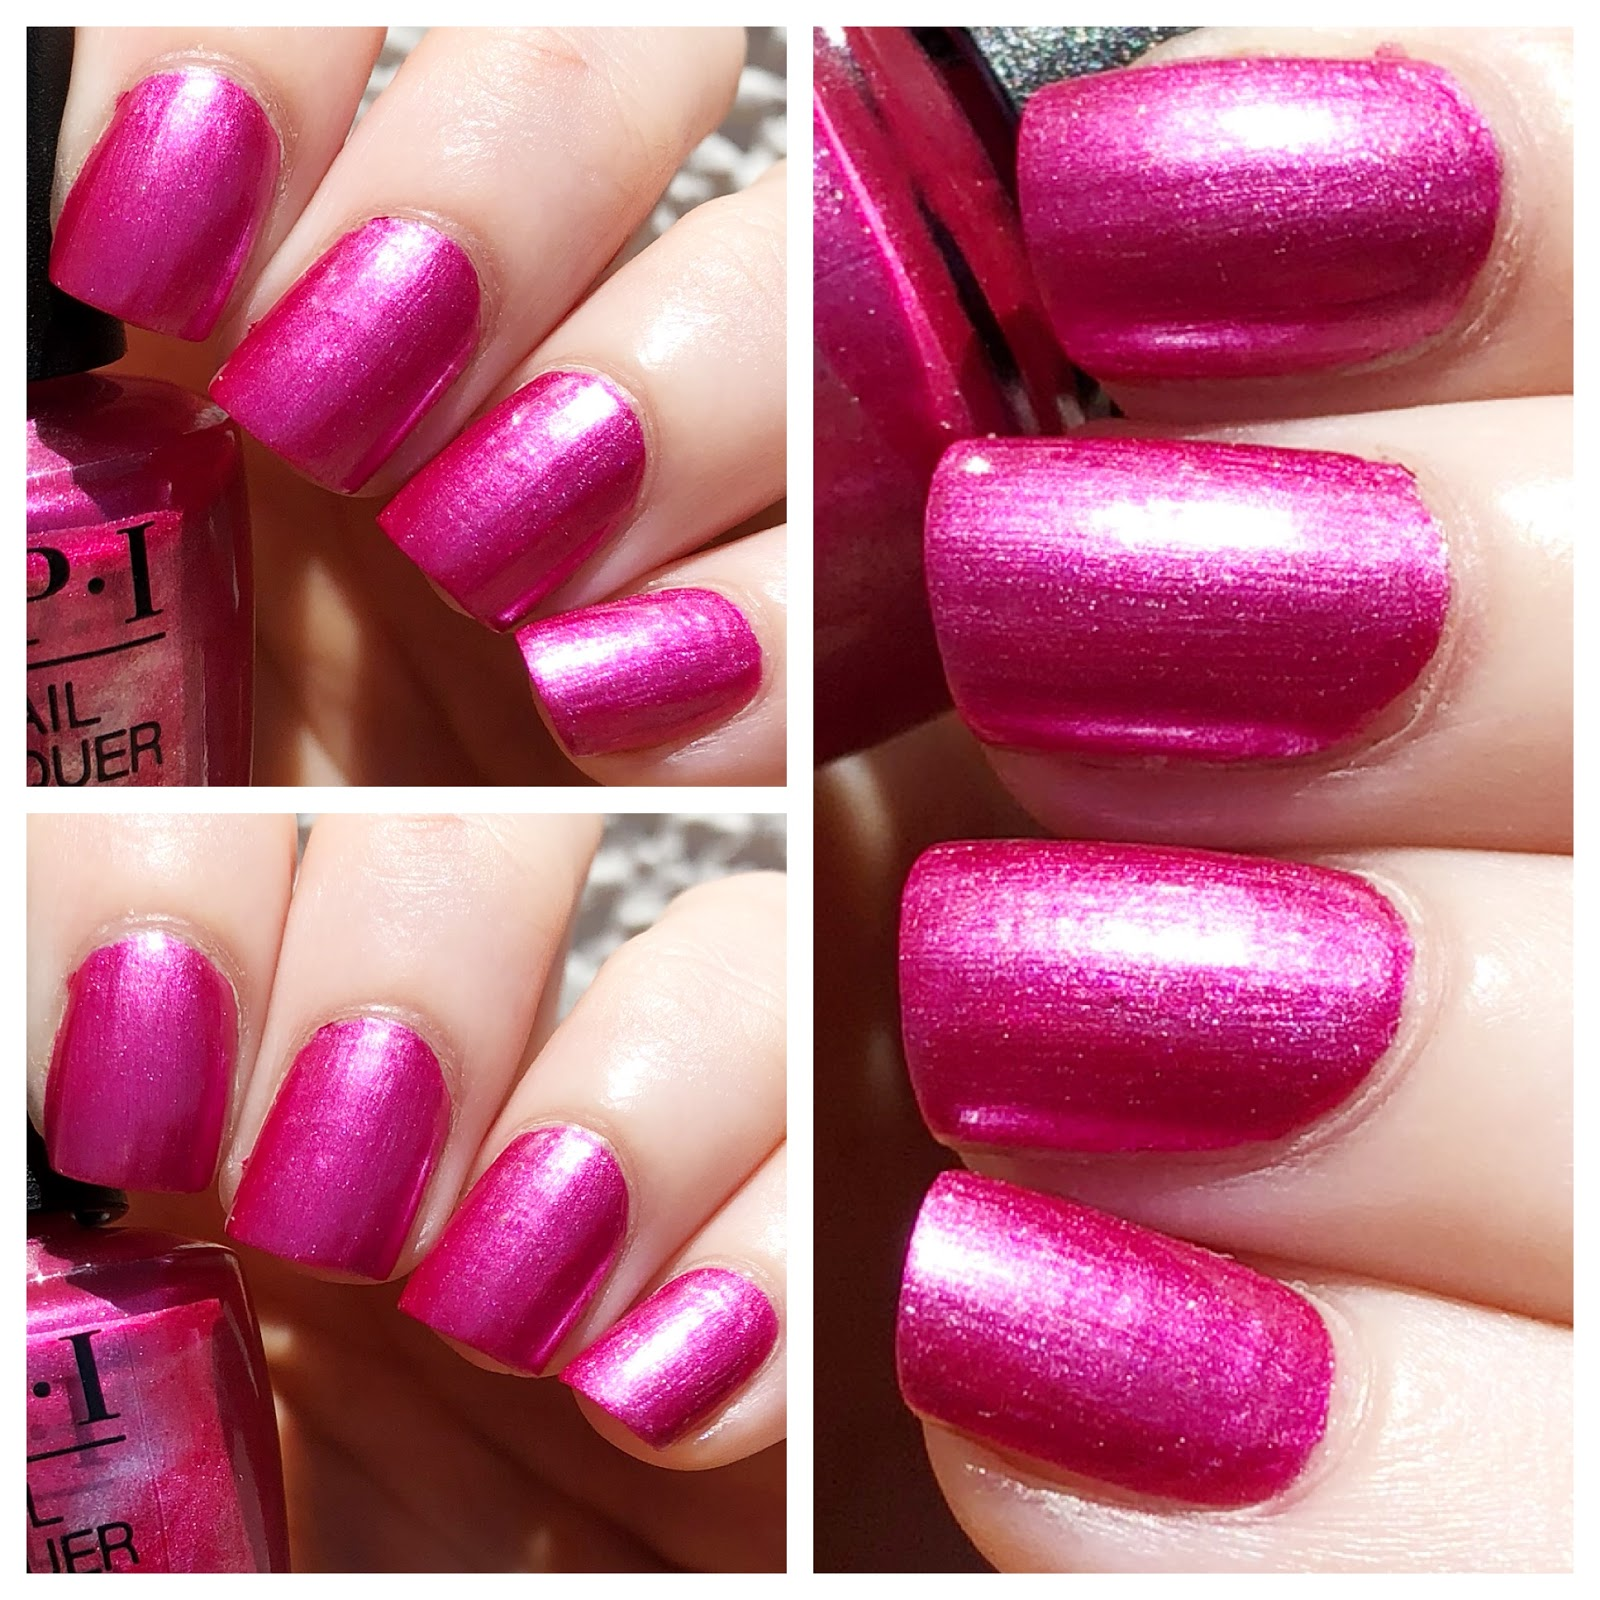 Cat Eyes Skinny Jeans Notd Opi Nail Lacquer Collection